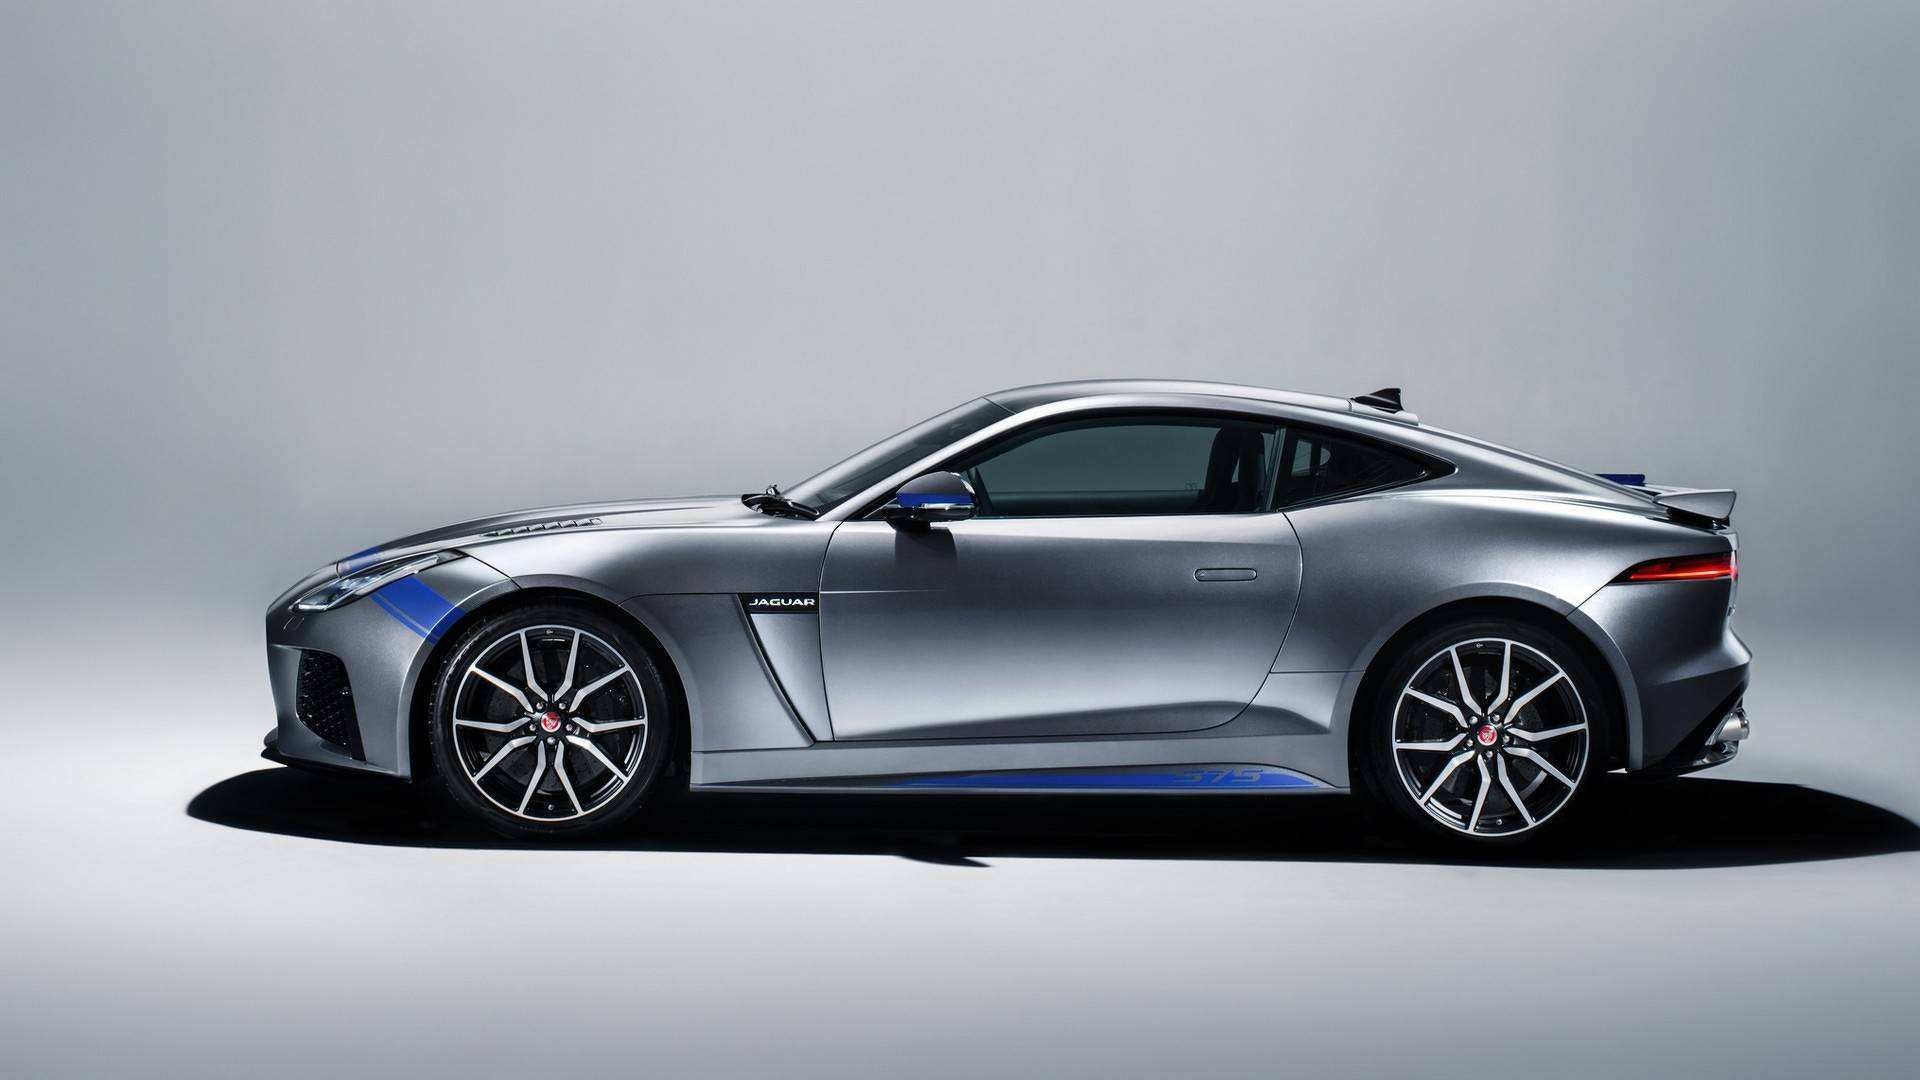 71 All New 2020 Jaguar Xq Crossover Research New